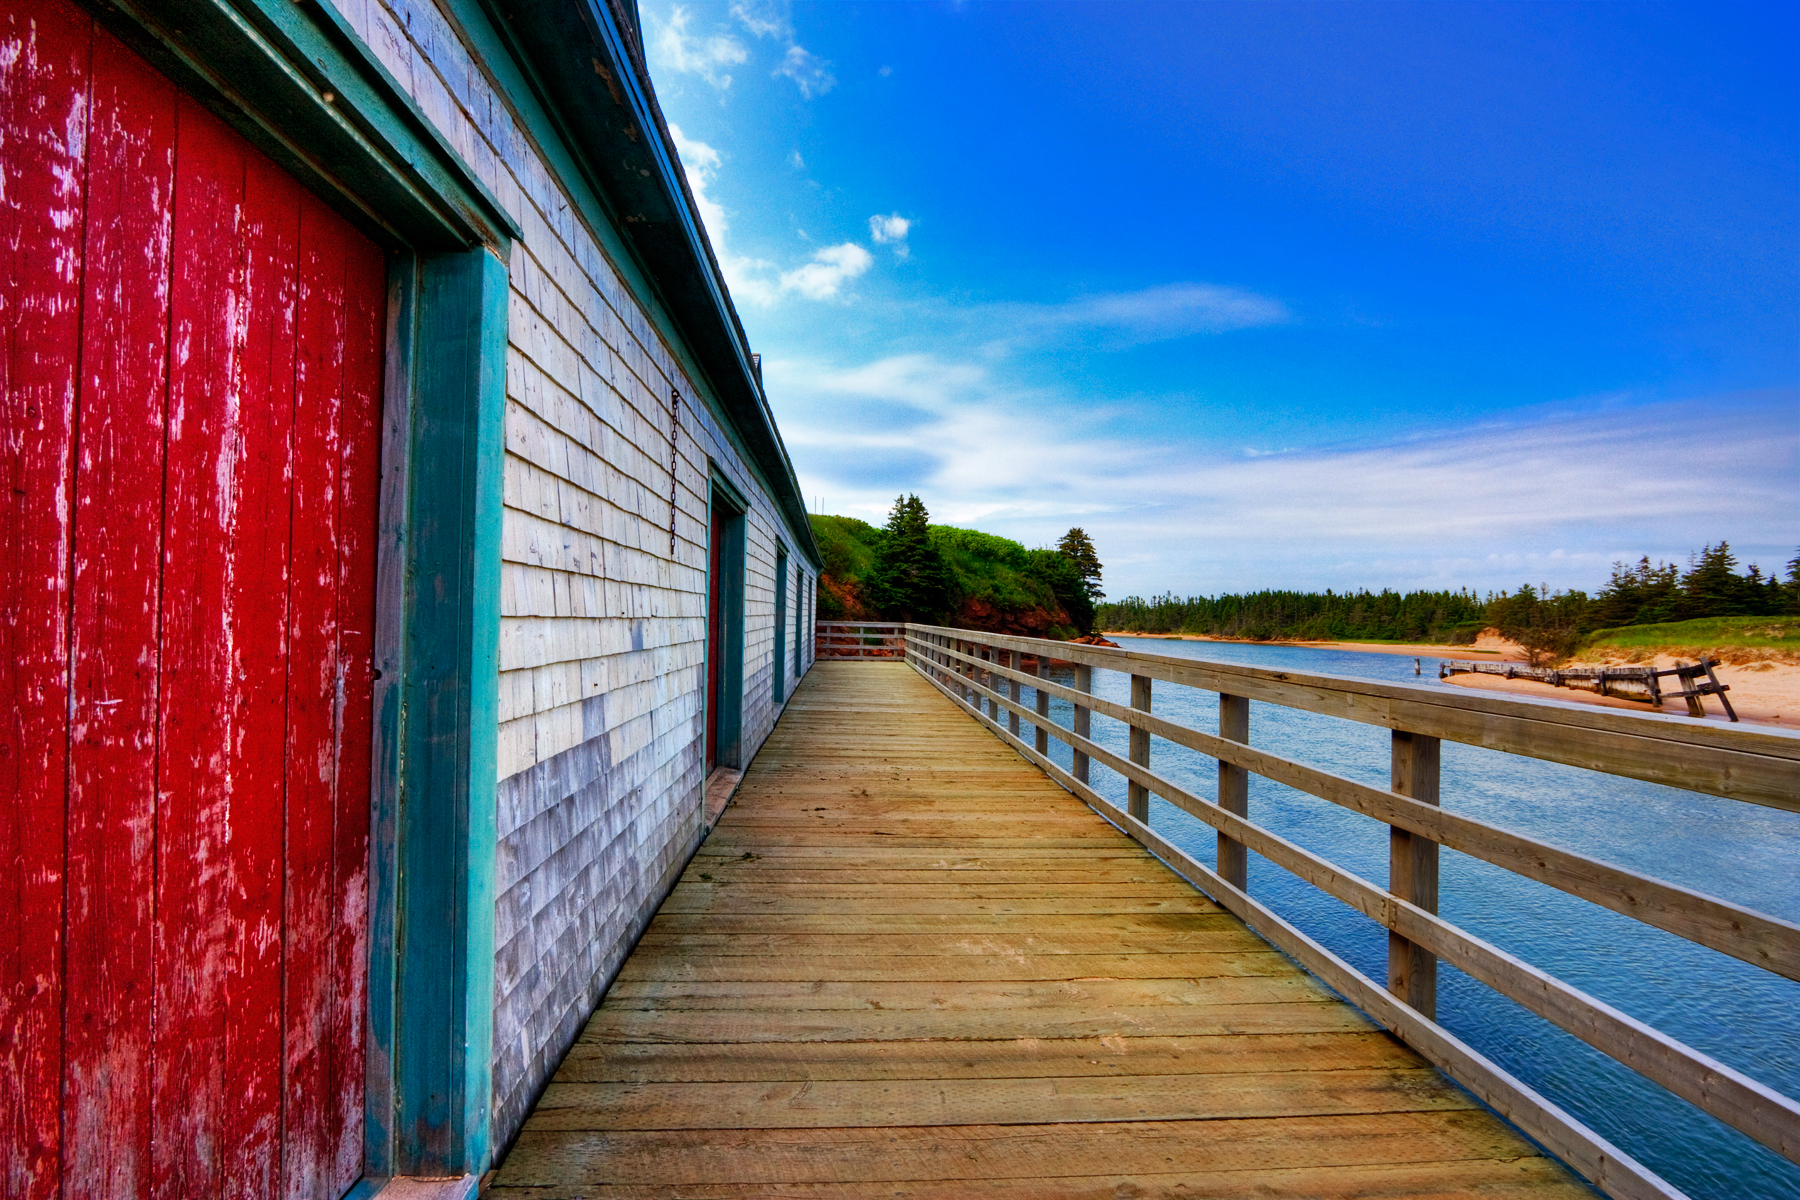 Pei beach boardwalk - hdr photo